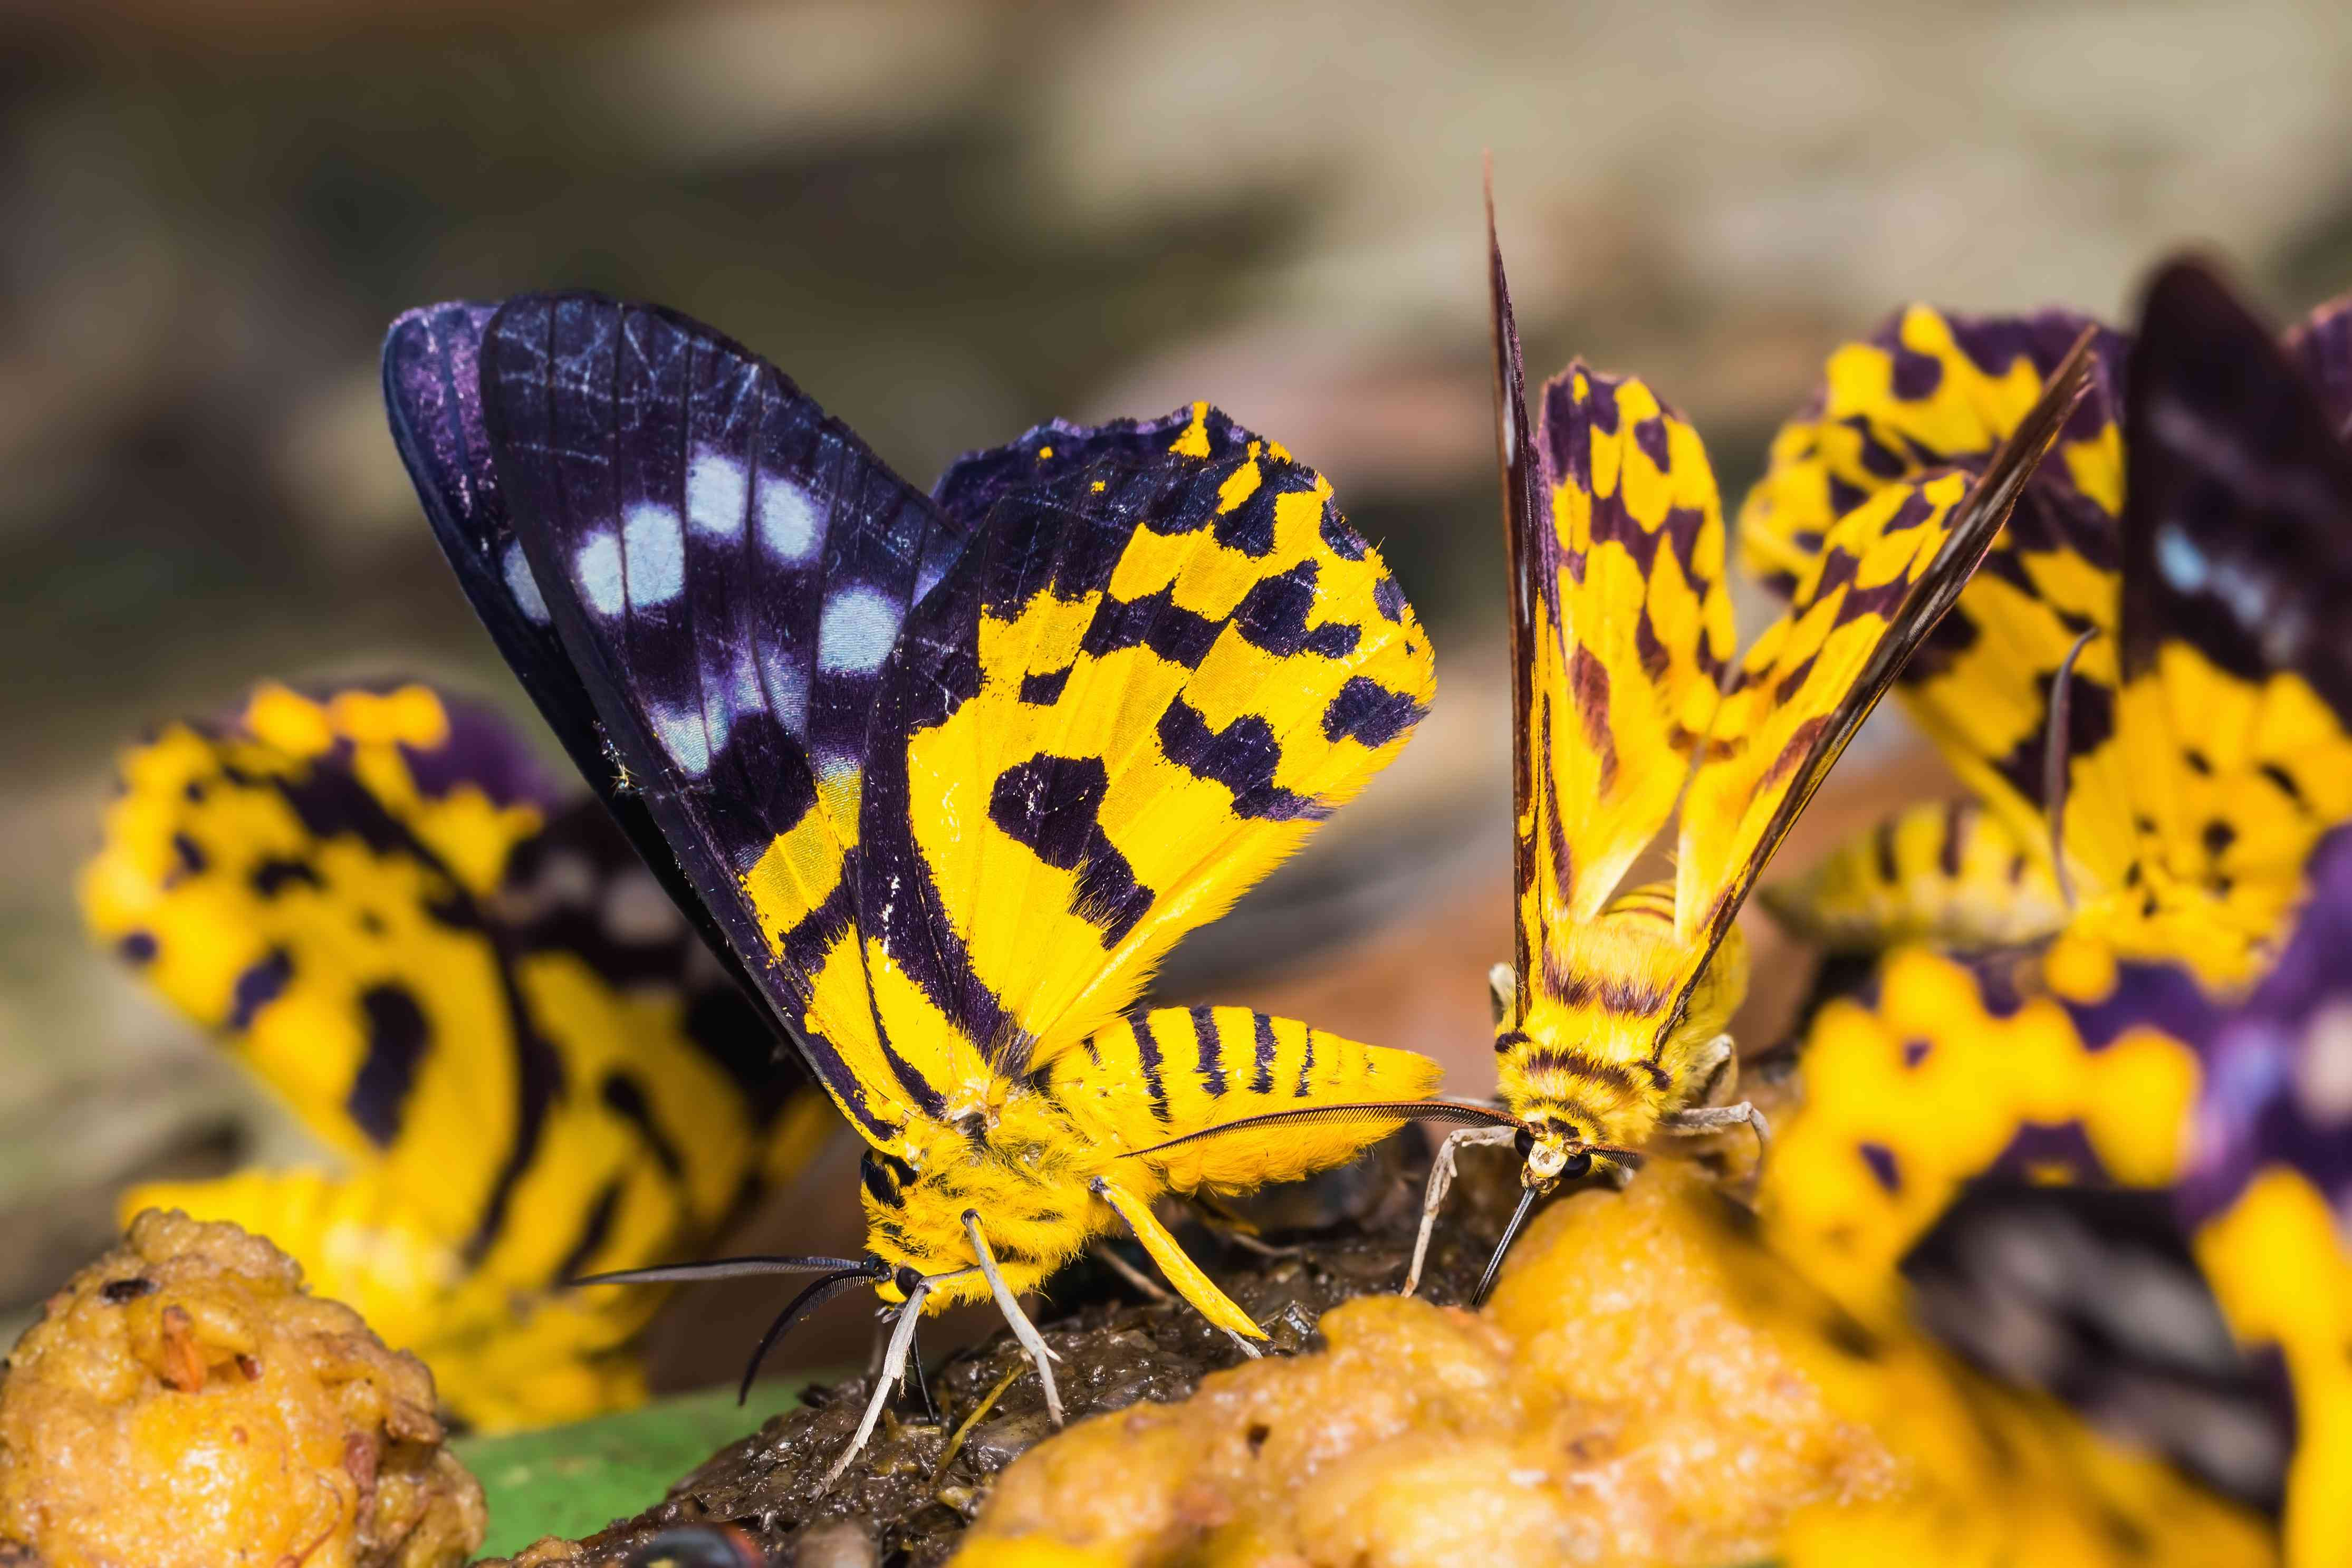 A group of purple and yellow moths perches on the ground